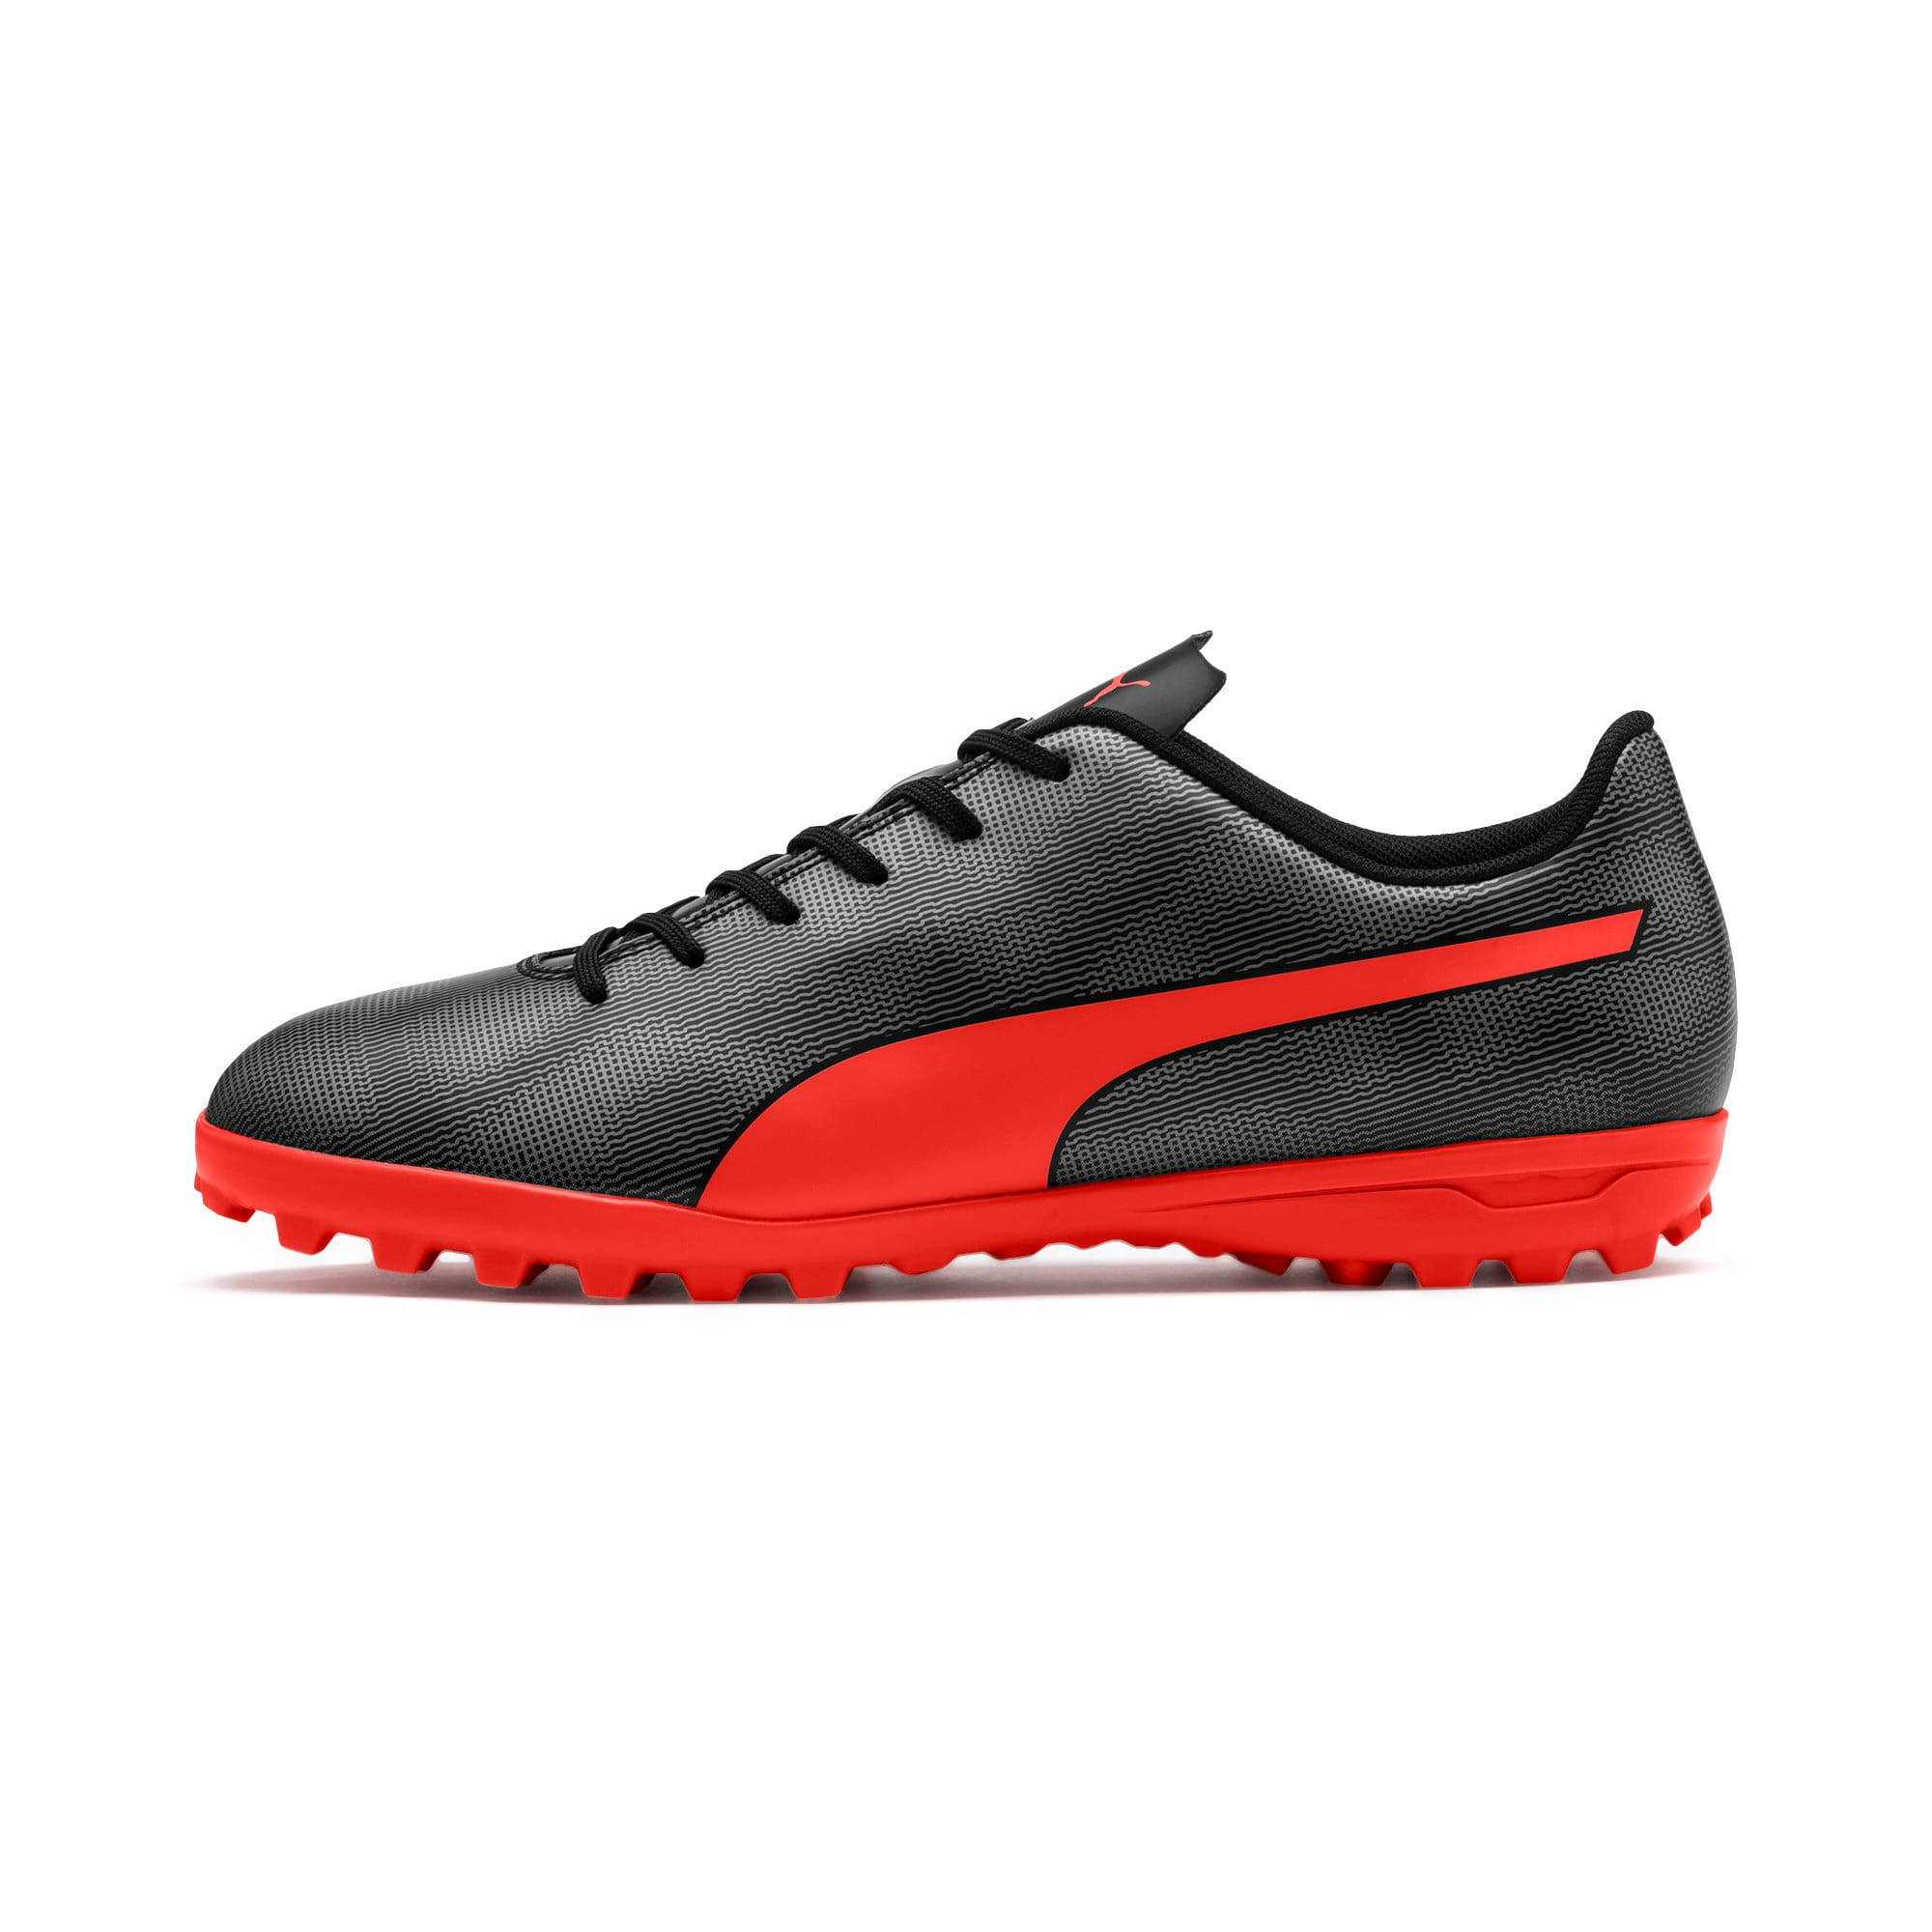 Thumbnail 1 of Rapido TT Men's Football Boots, Black-Nrgy Red-Aged Silver, medium-IND